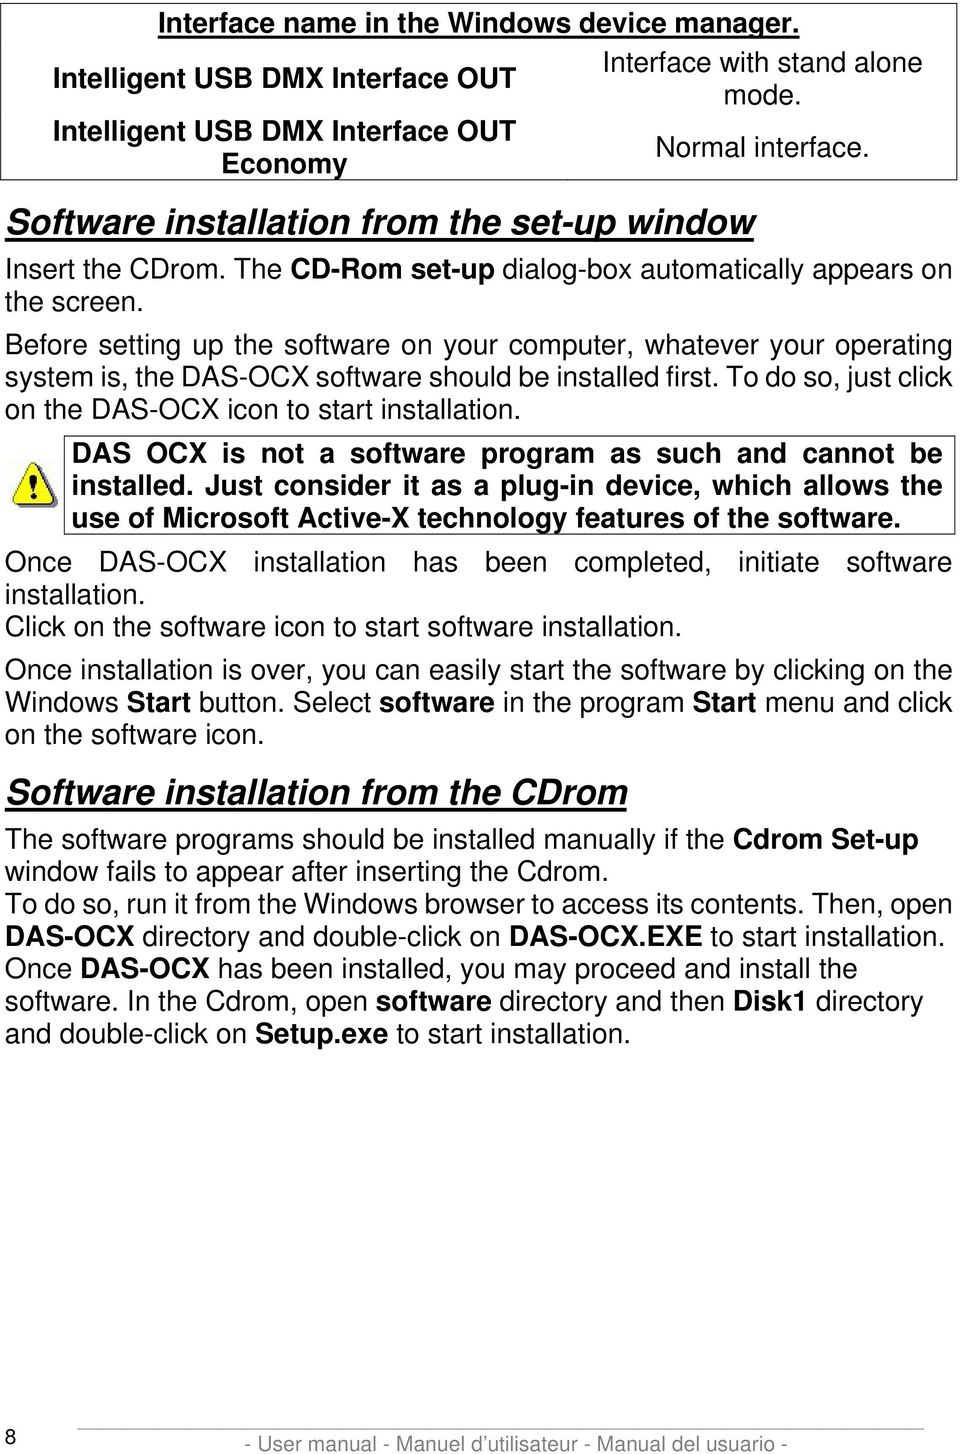 Before setting up the software on your computer, whatever your operating system is, the DAS-OCX software should be installed first. To do so, just click on the DAS-OCX icon to start installation.